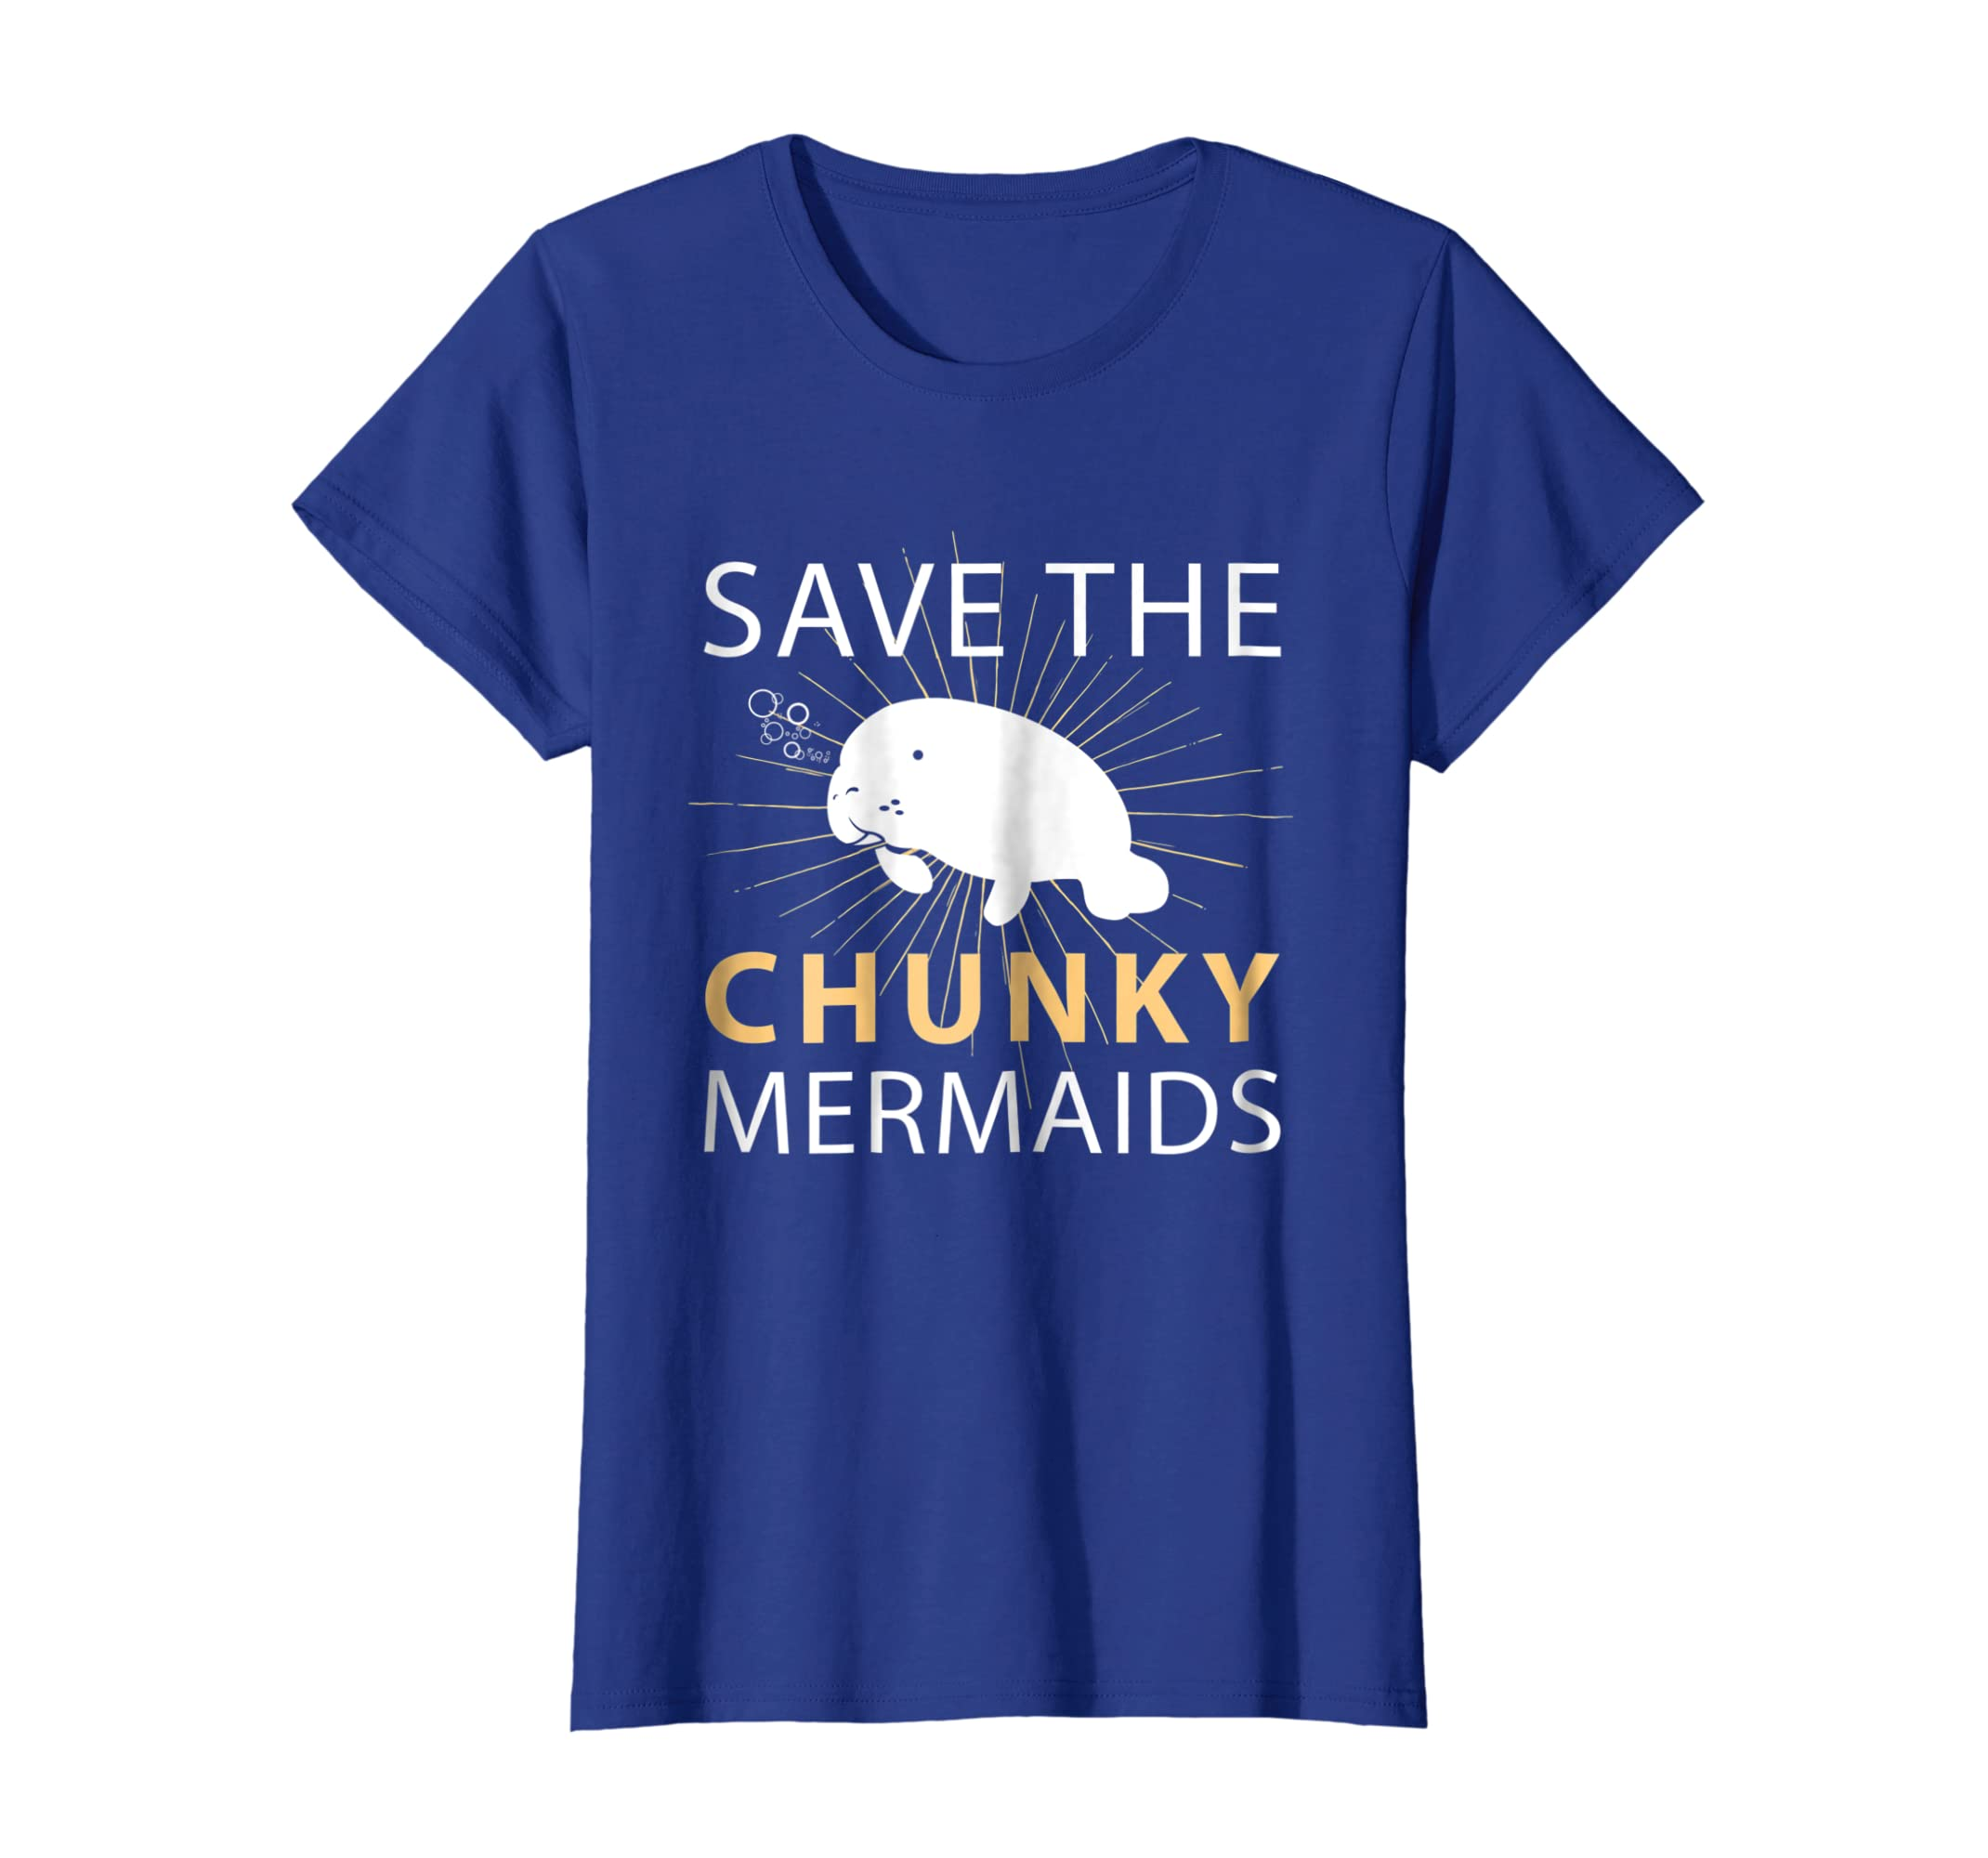 ad7a3dee1 Amazon.com: Manatees Apparel T-Shirt Save The Chunky Mermaids Tee: Clothing